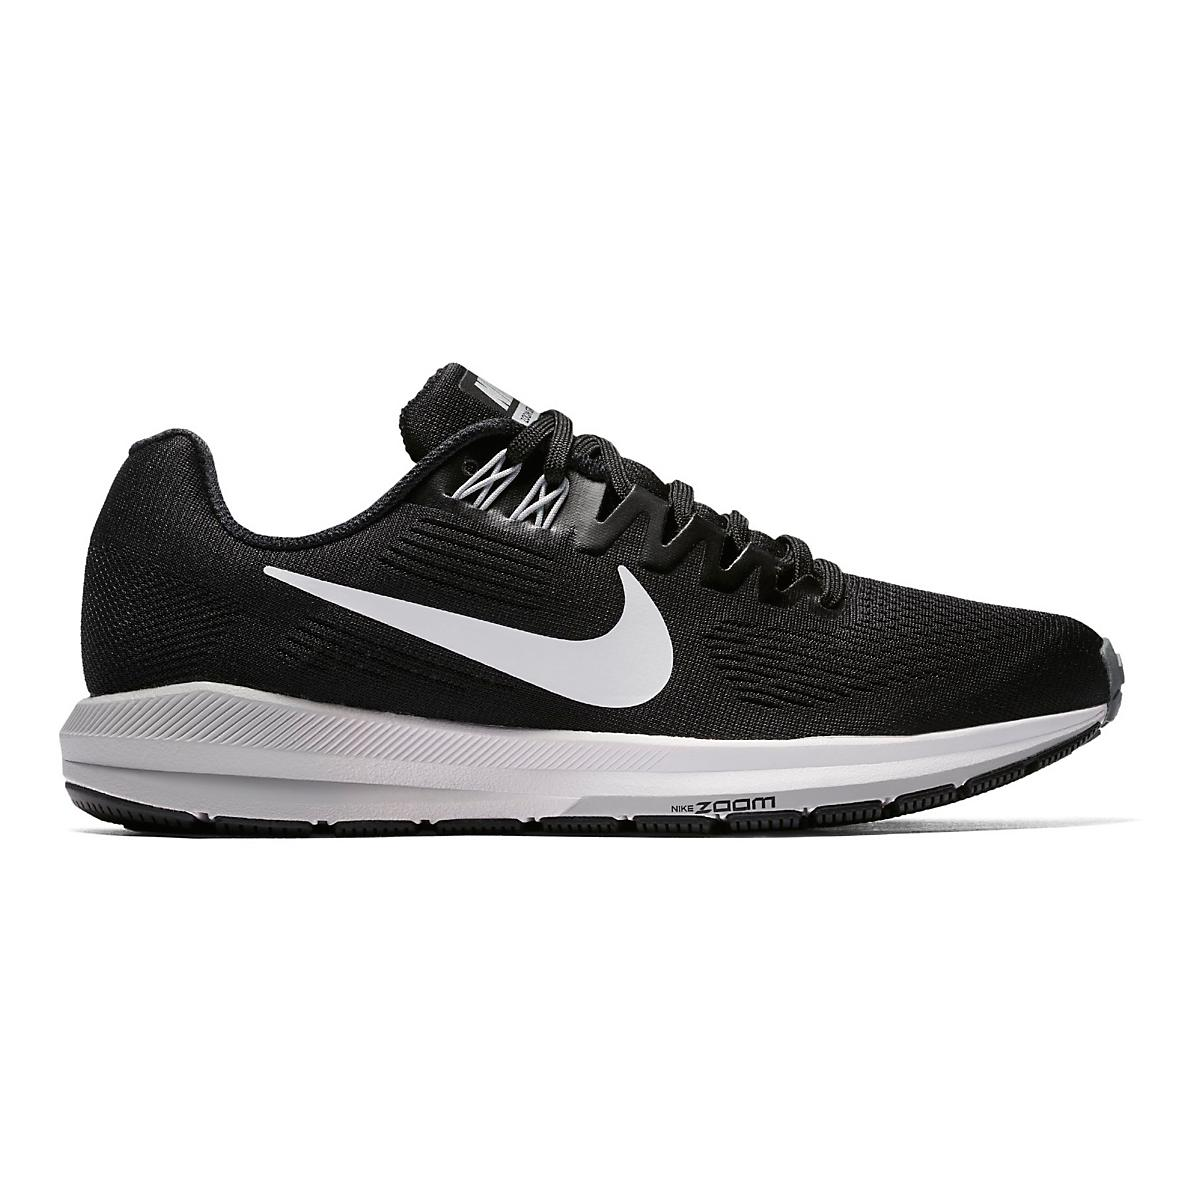 1d4dc36867db Womens Nike Air Zoom Structure 21 Running Shoe at Road Runner Sports